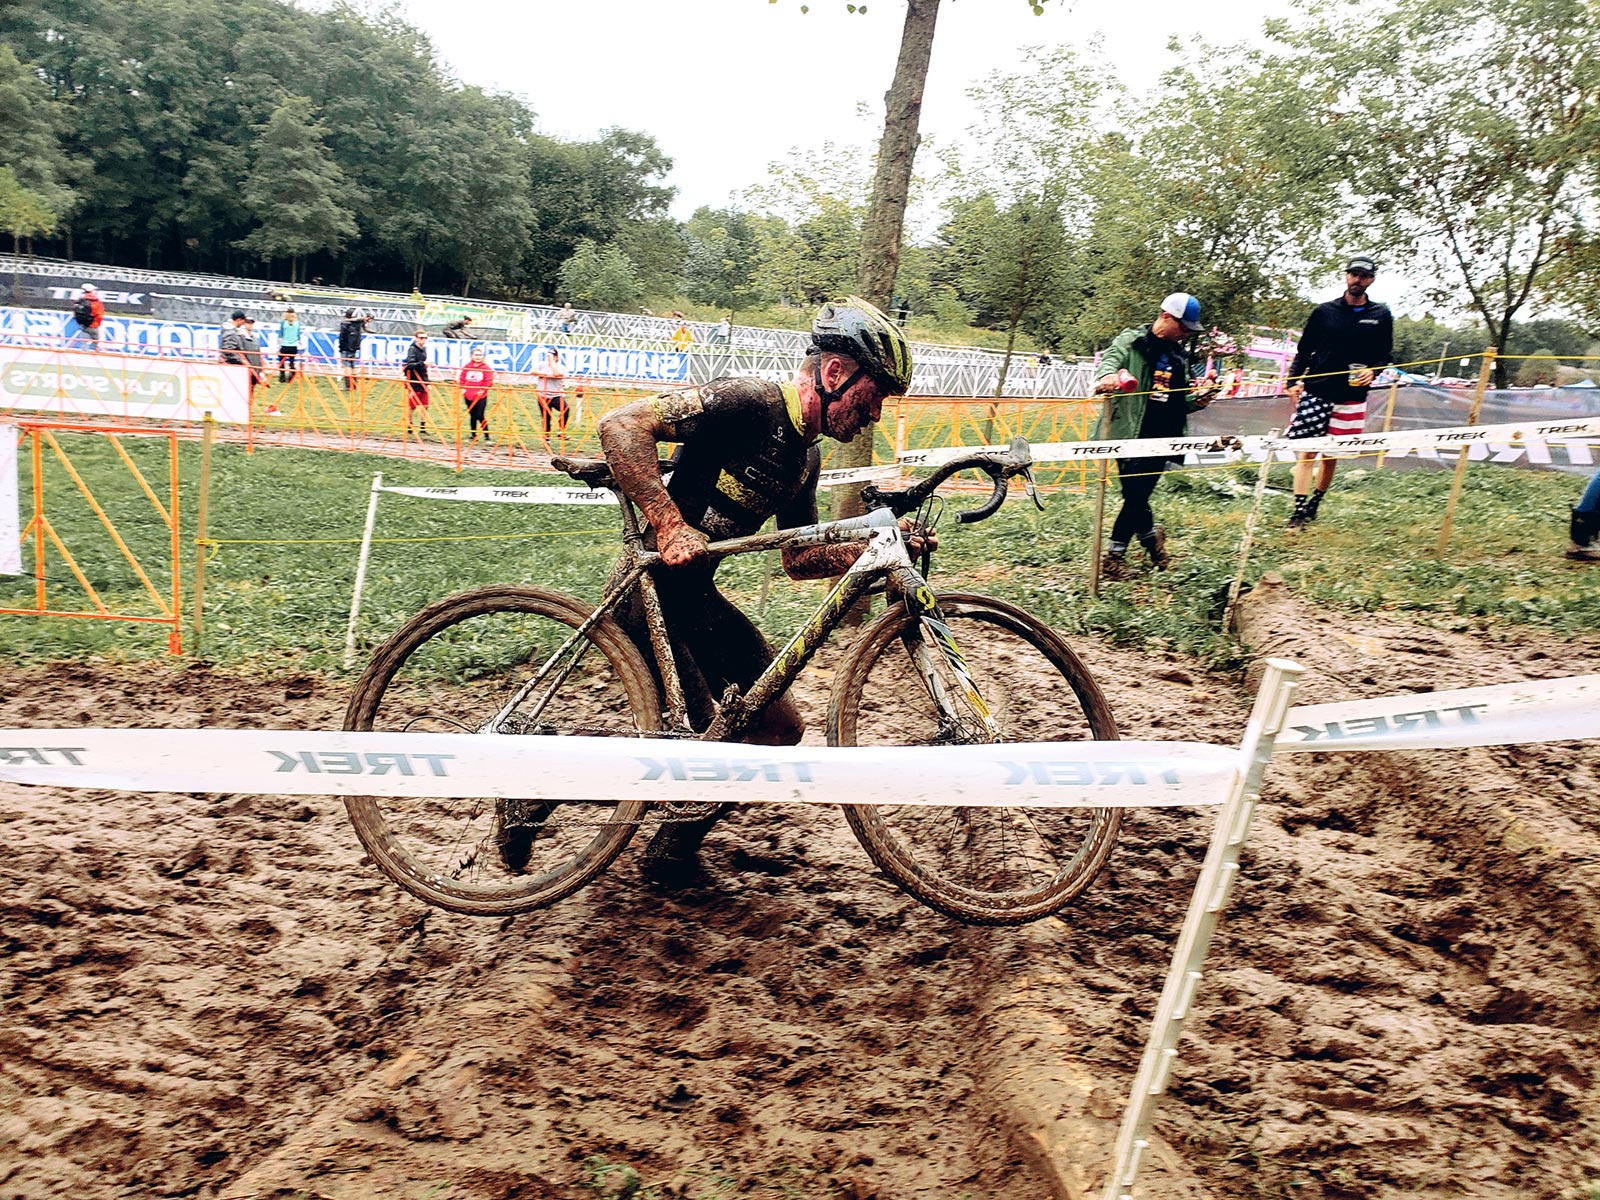 A cyclocross racer carries his bike up a muddy stair set at the Trek CX Cup in 2019.